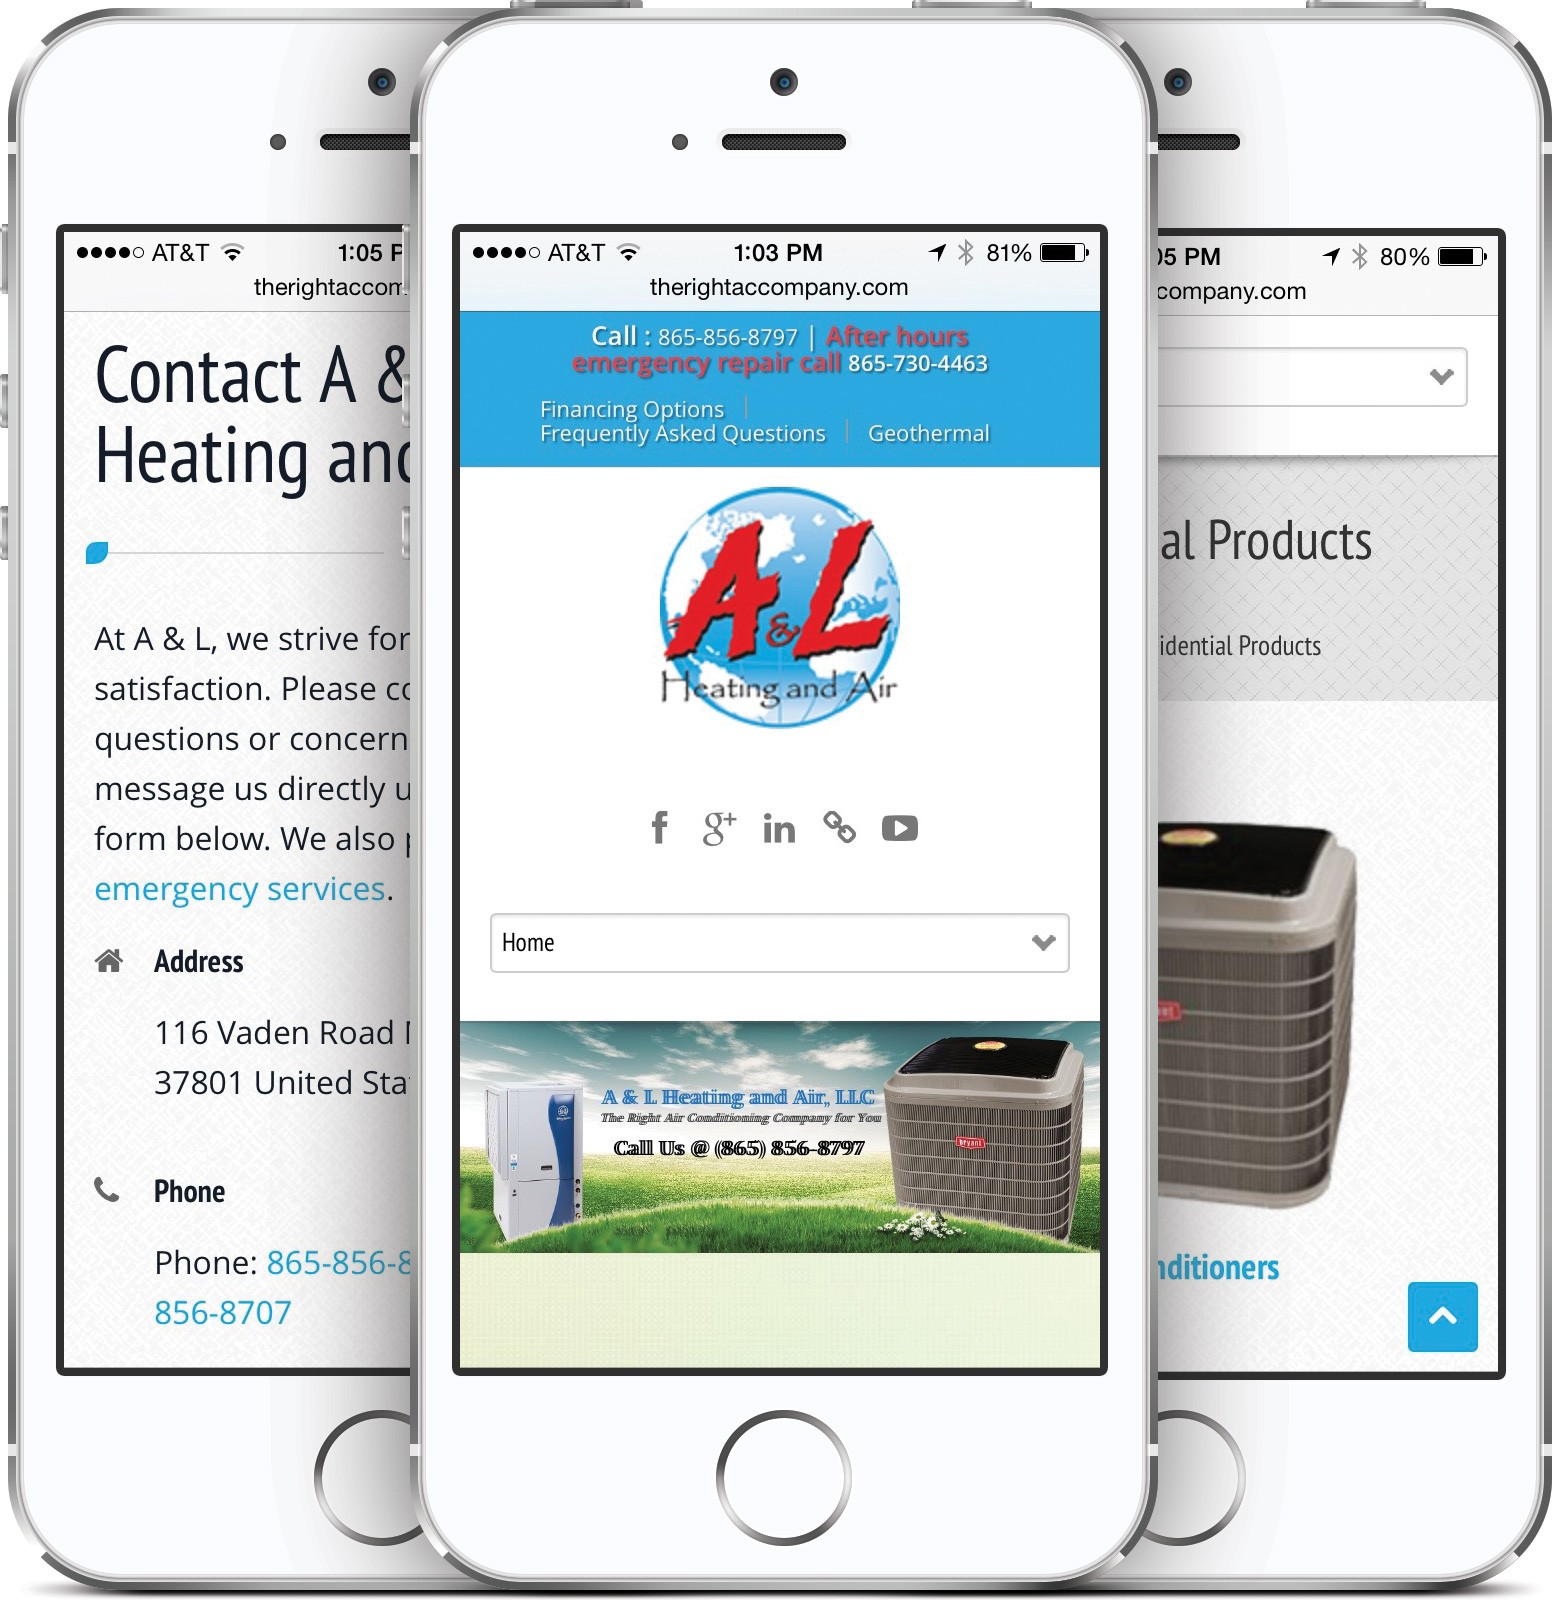 A & L Heating and Air on an iPhone